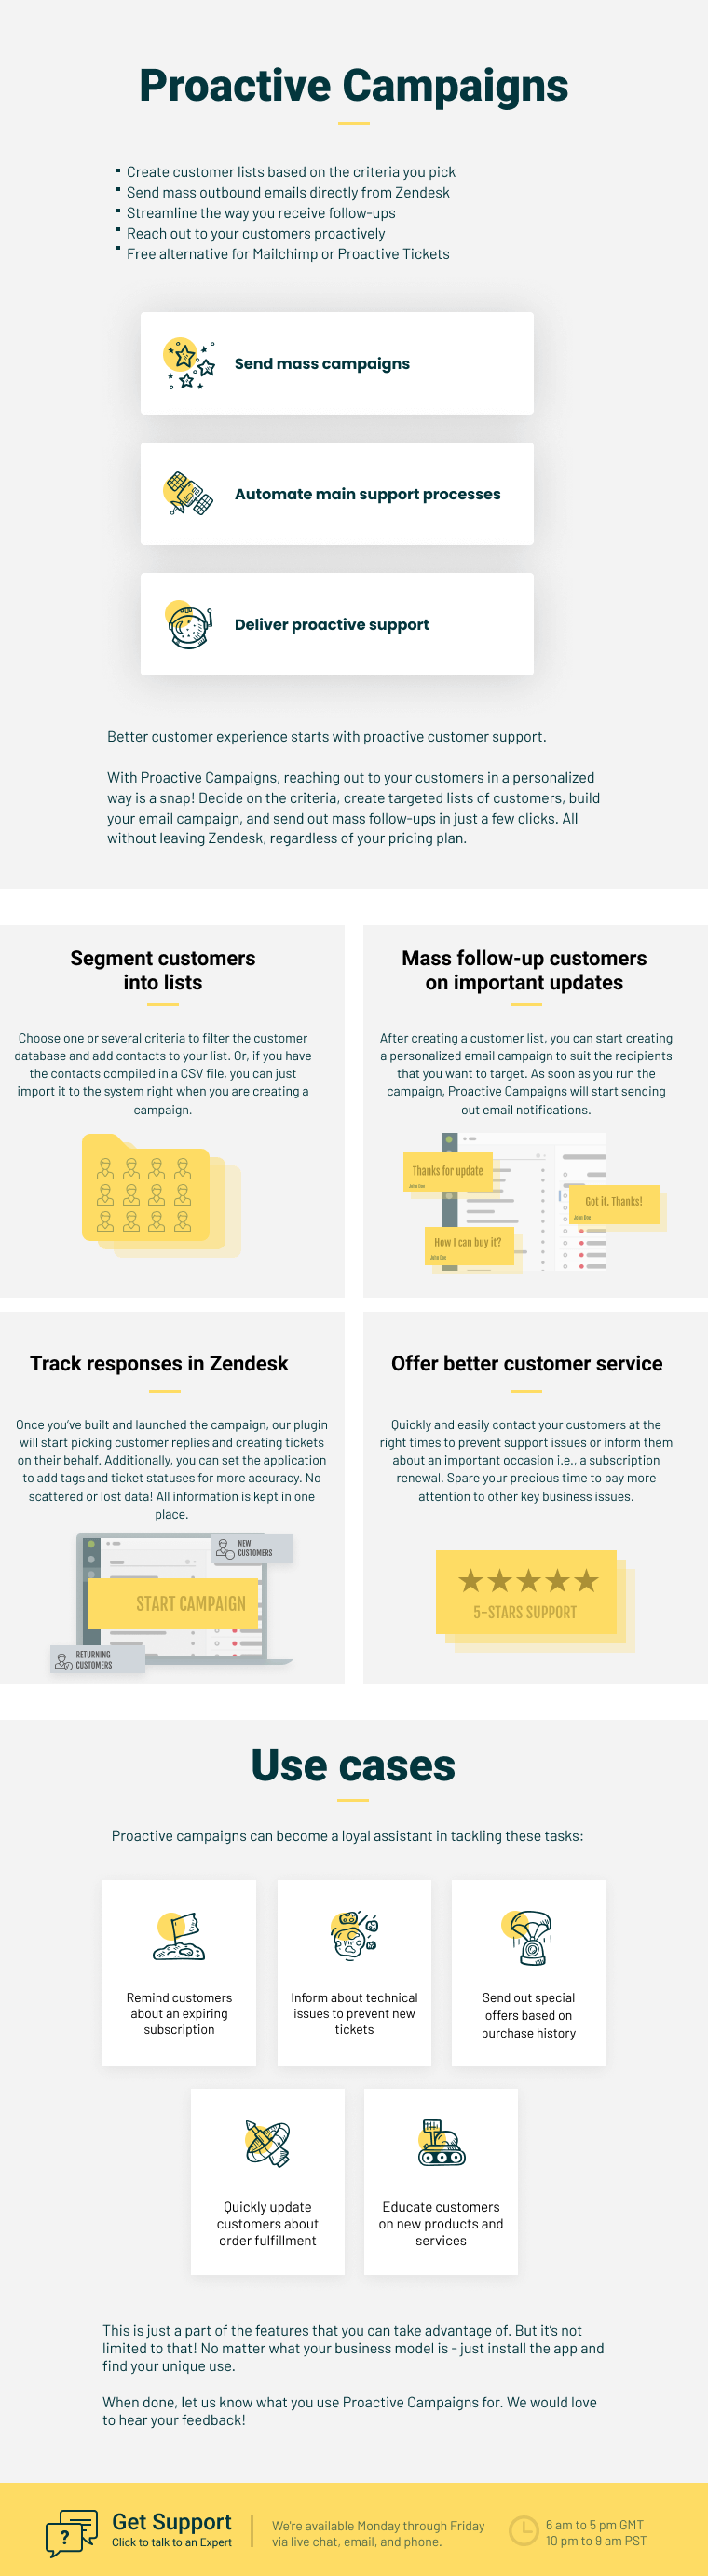 Zendesk Proactive Campaigns